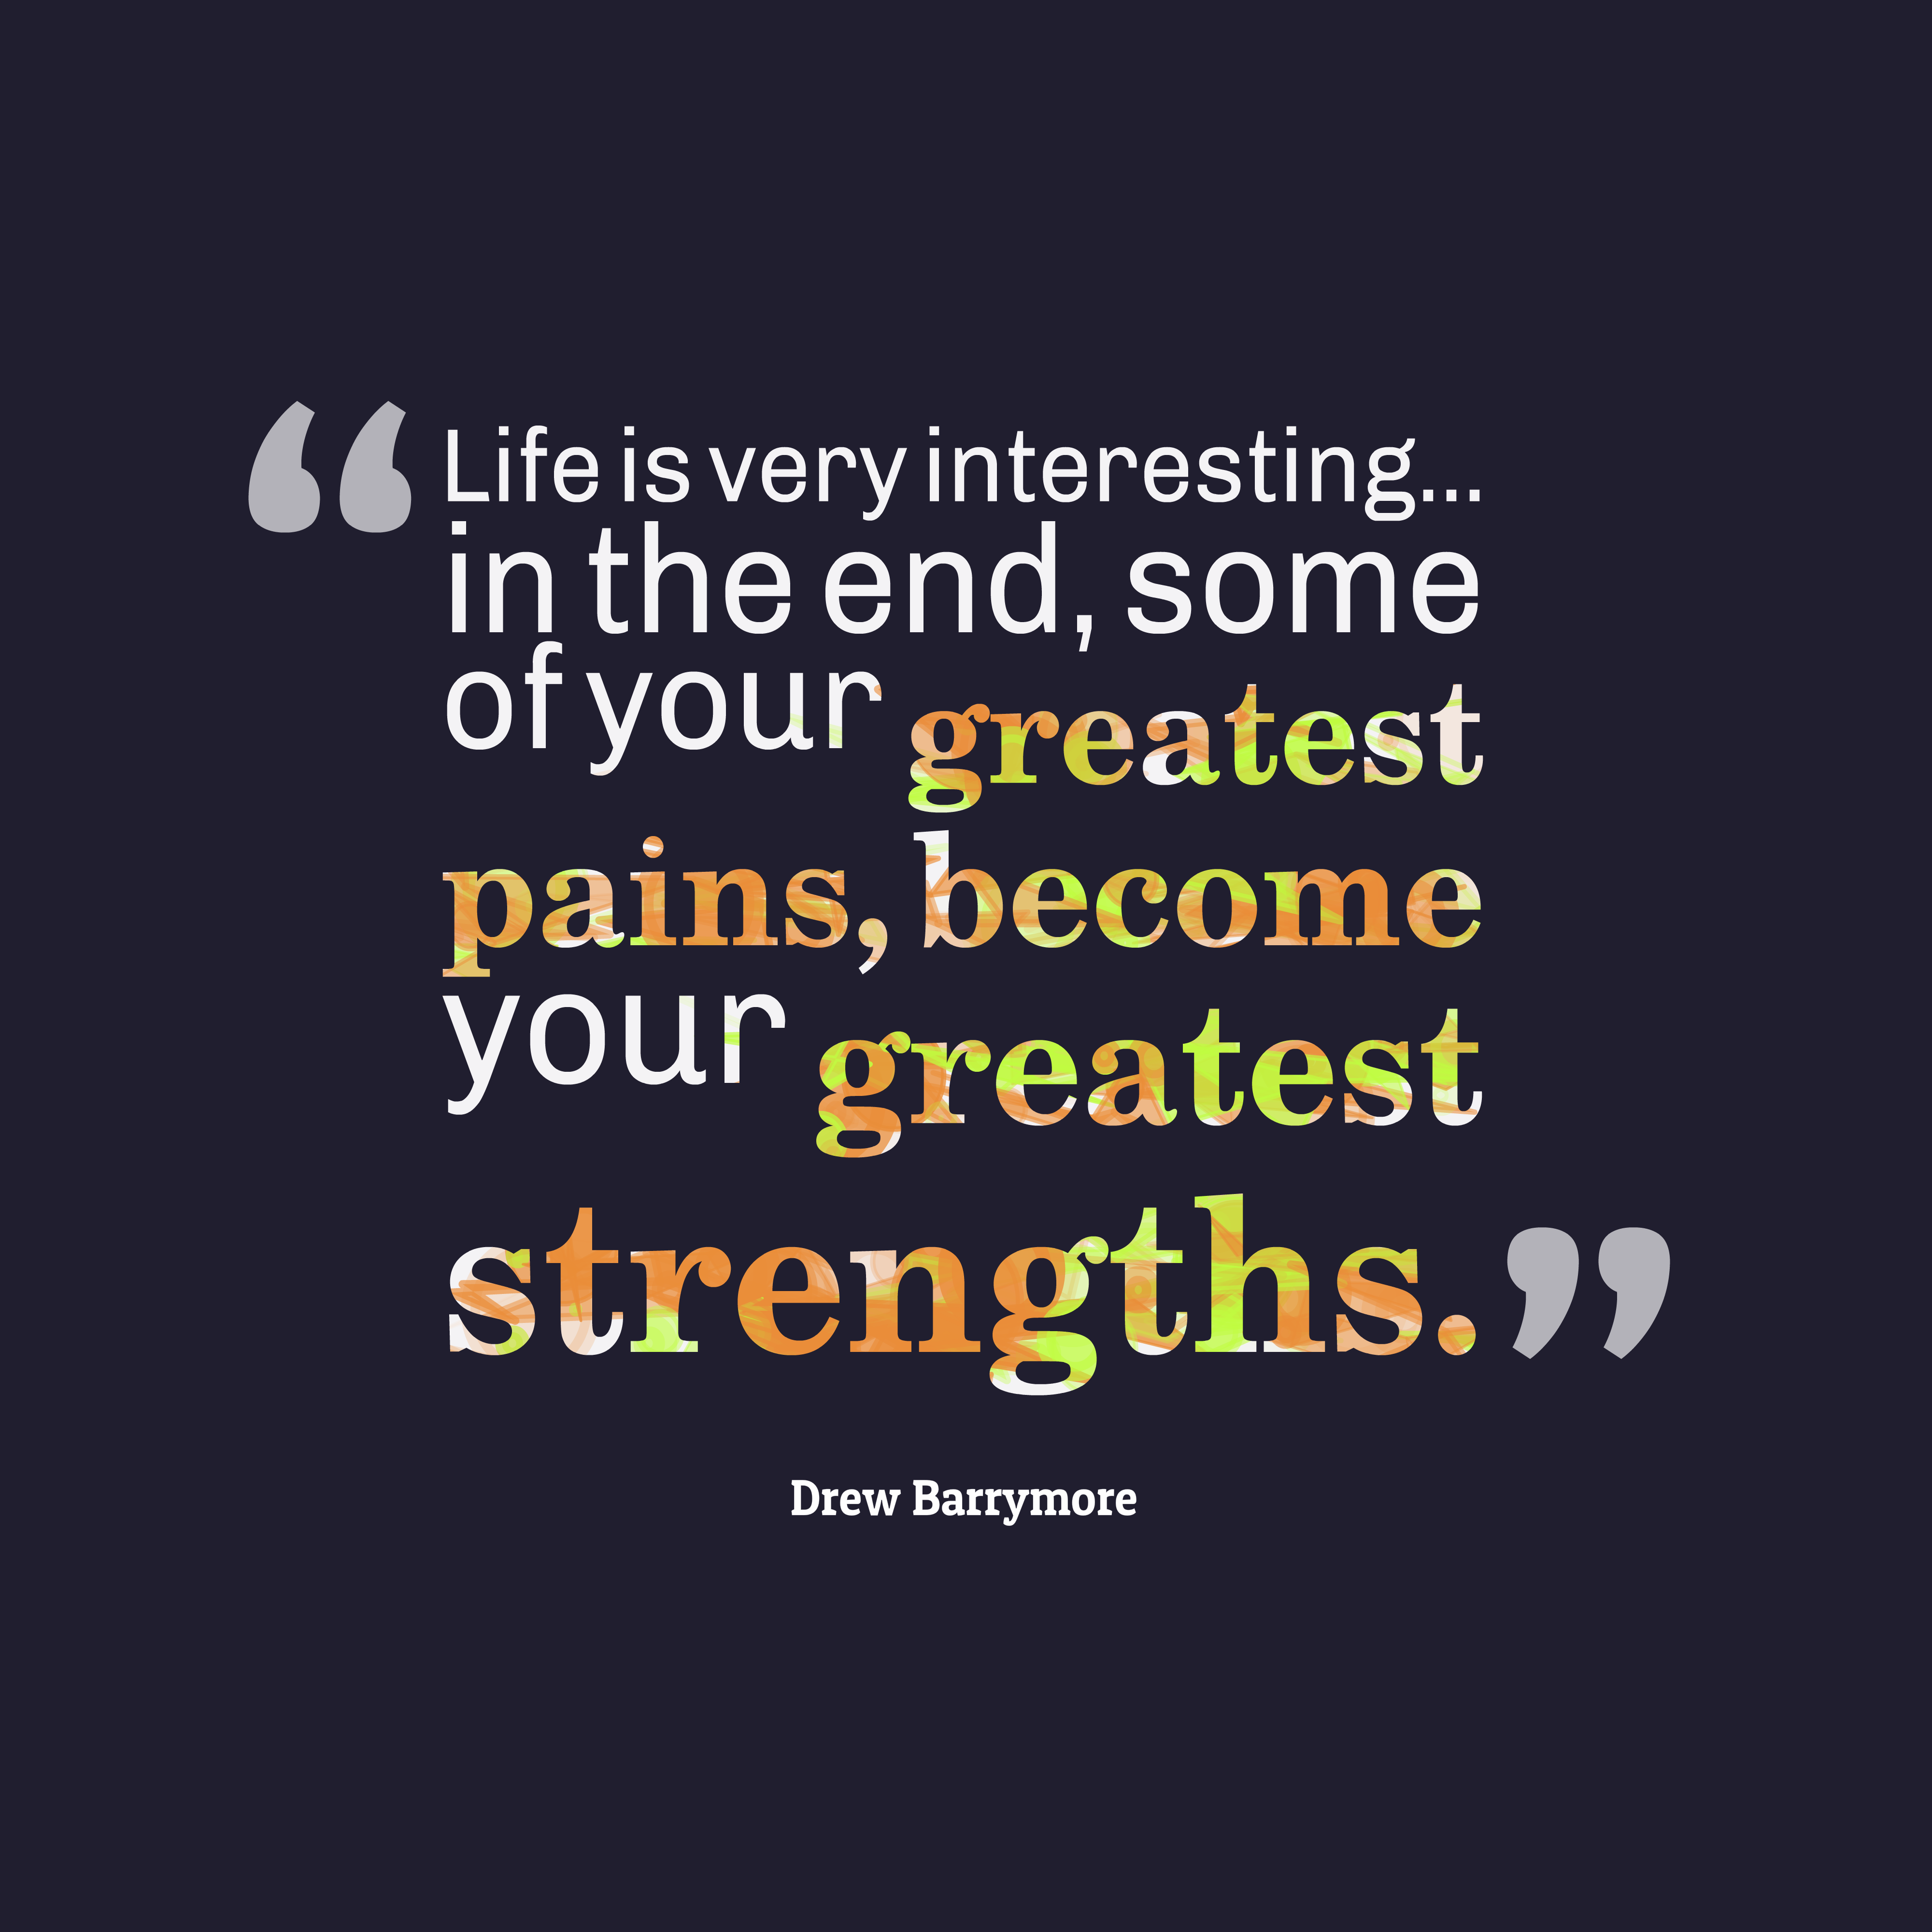 Quotes image of Life is very interesting... in the end, some of your greatest pains, become your greatest strengths.